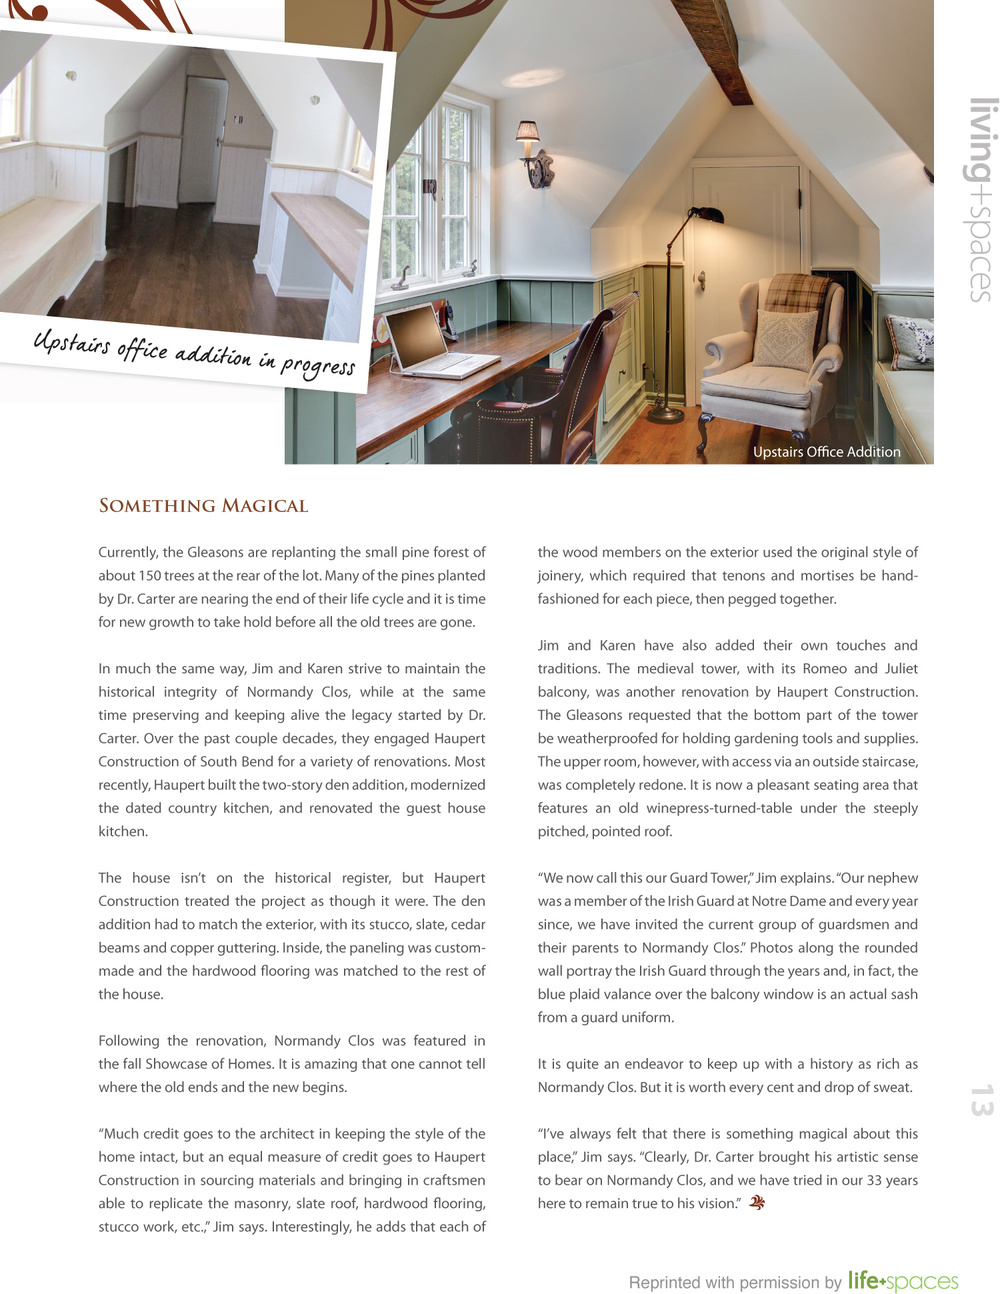 Normandy-Clos-Article-pg-5.jpg